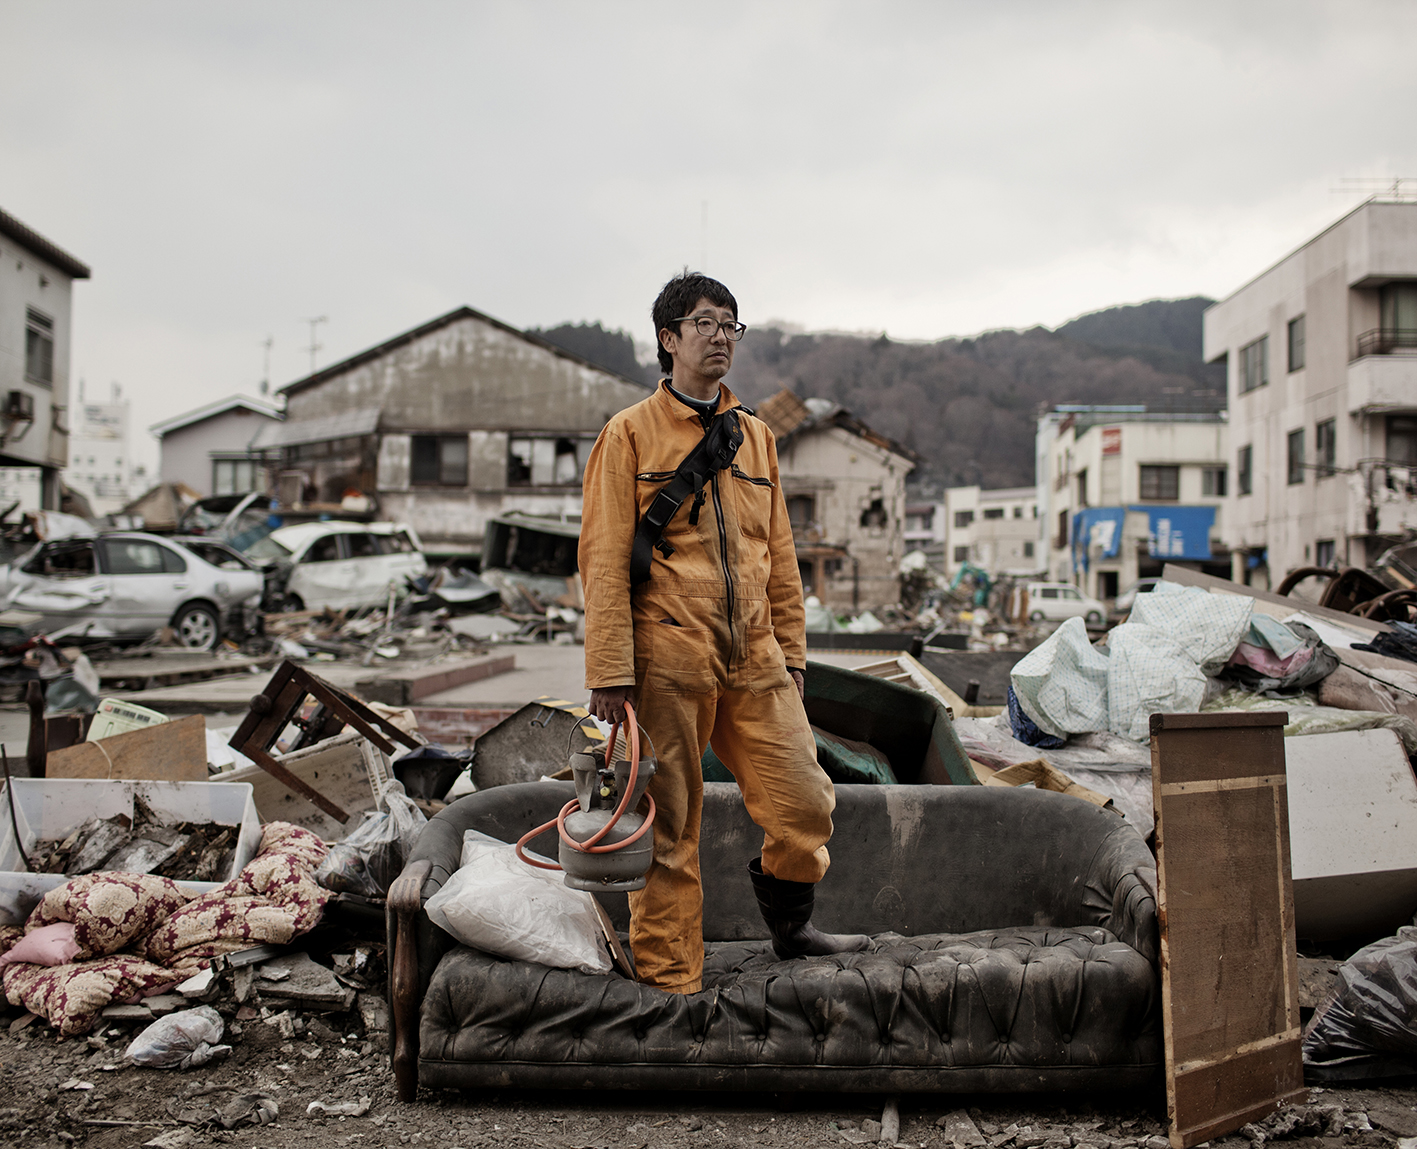 Shigeru Sano Owner of a Liquor shop complitely destroyed by the Tsunami.He use to sell Italian and French Wine to all Iwate prefecture, March 30th, 2011.A devastating six-metre-high tsunami sweeps into the port city of Kamaishi in north-east Japan following an earthquake of up to 8.9 magnitude on march 11th.Kamaishi famous breakwater was in the Guinness World Records as the deepest on the planet. It was a product of decades of research on wave dynamics and dissipation. But the tsunami made short work of it and destroied half part of the city.